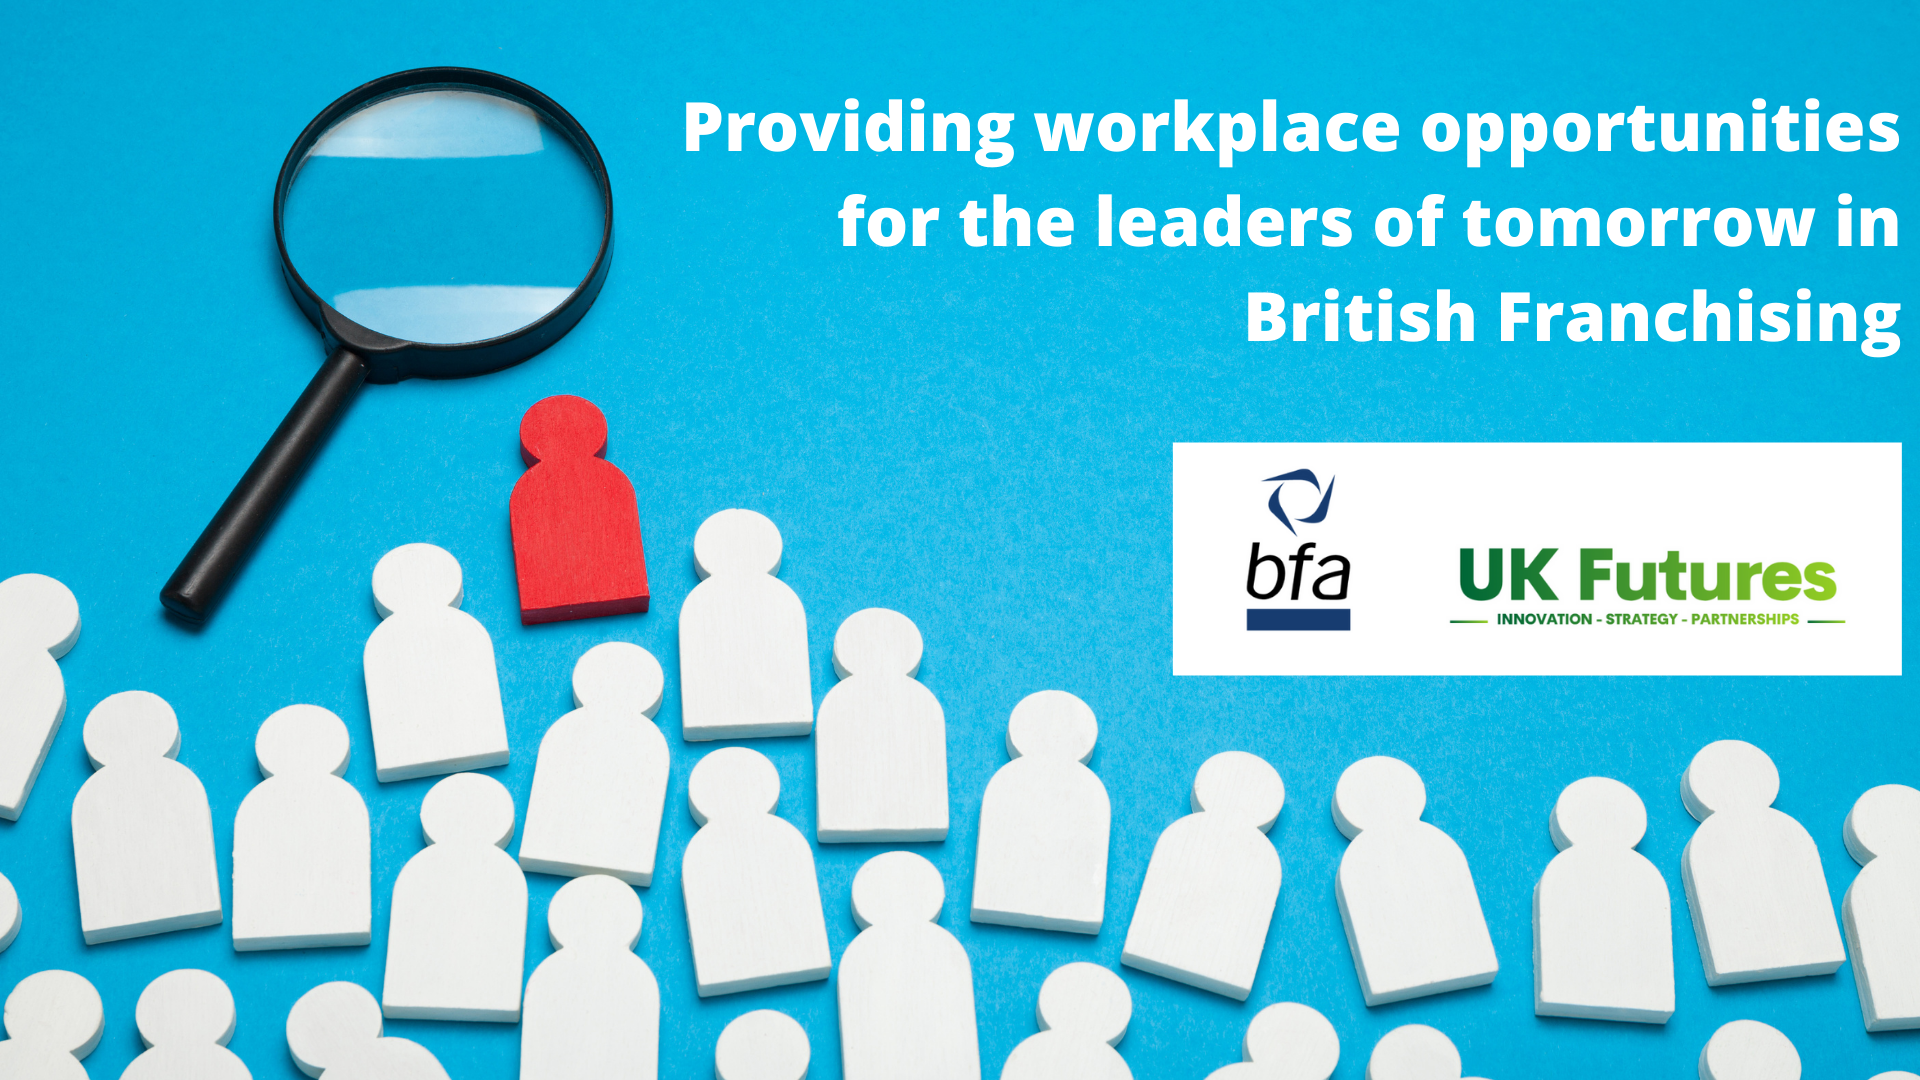 British Franchise Association partners with UK Futures to provide the next generation with workplace opportunities in the UK Franchising Industry